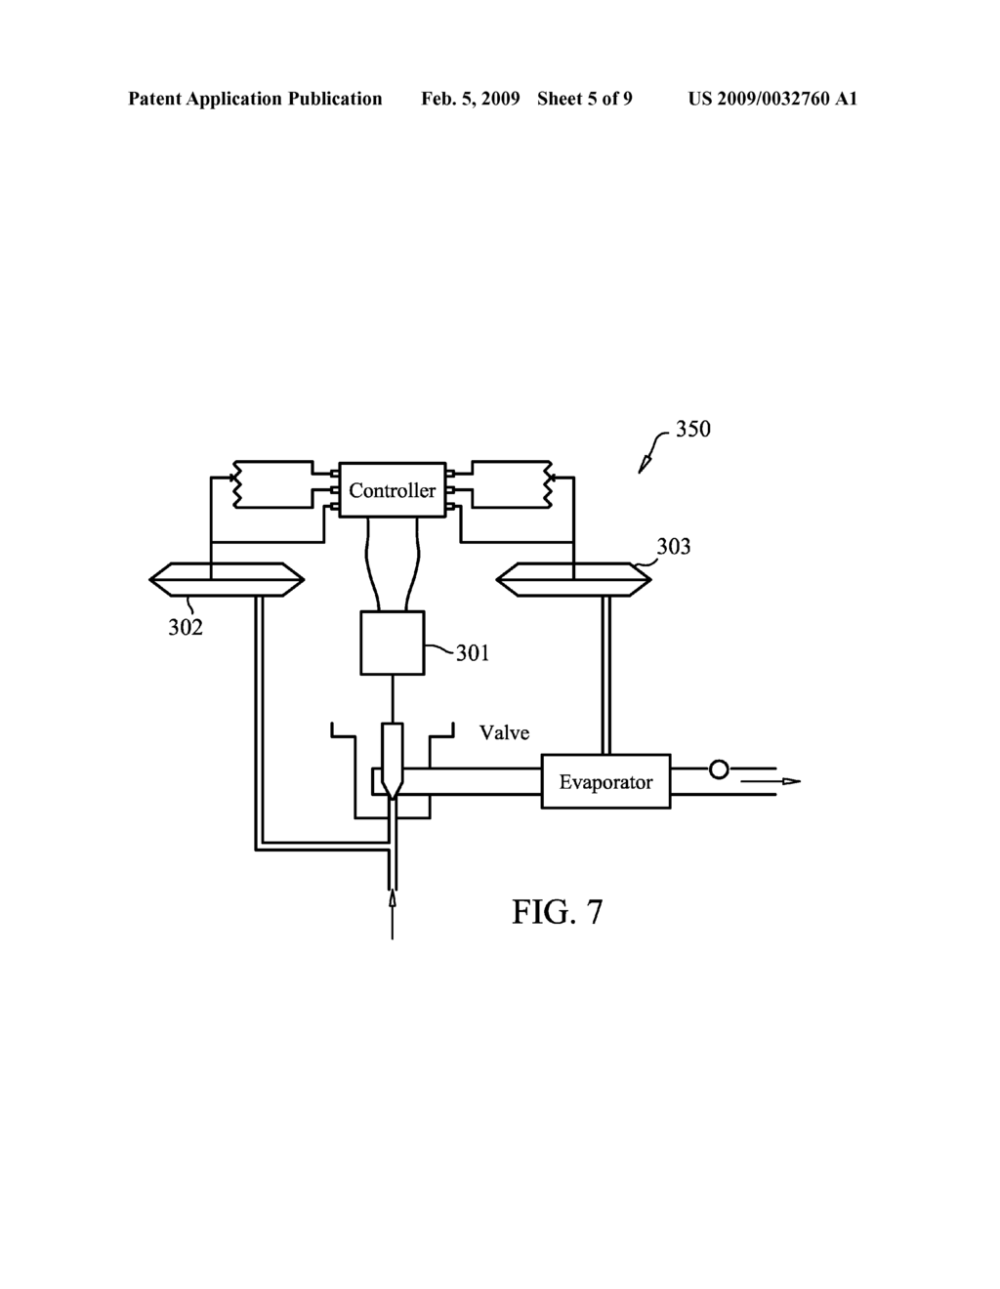 medium resolution of rotational multi vane positive displacement valve for use with a solar air conditioning system diagram schematic and image 06